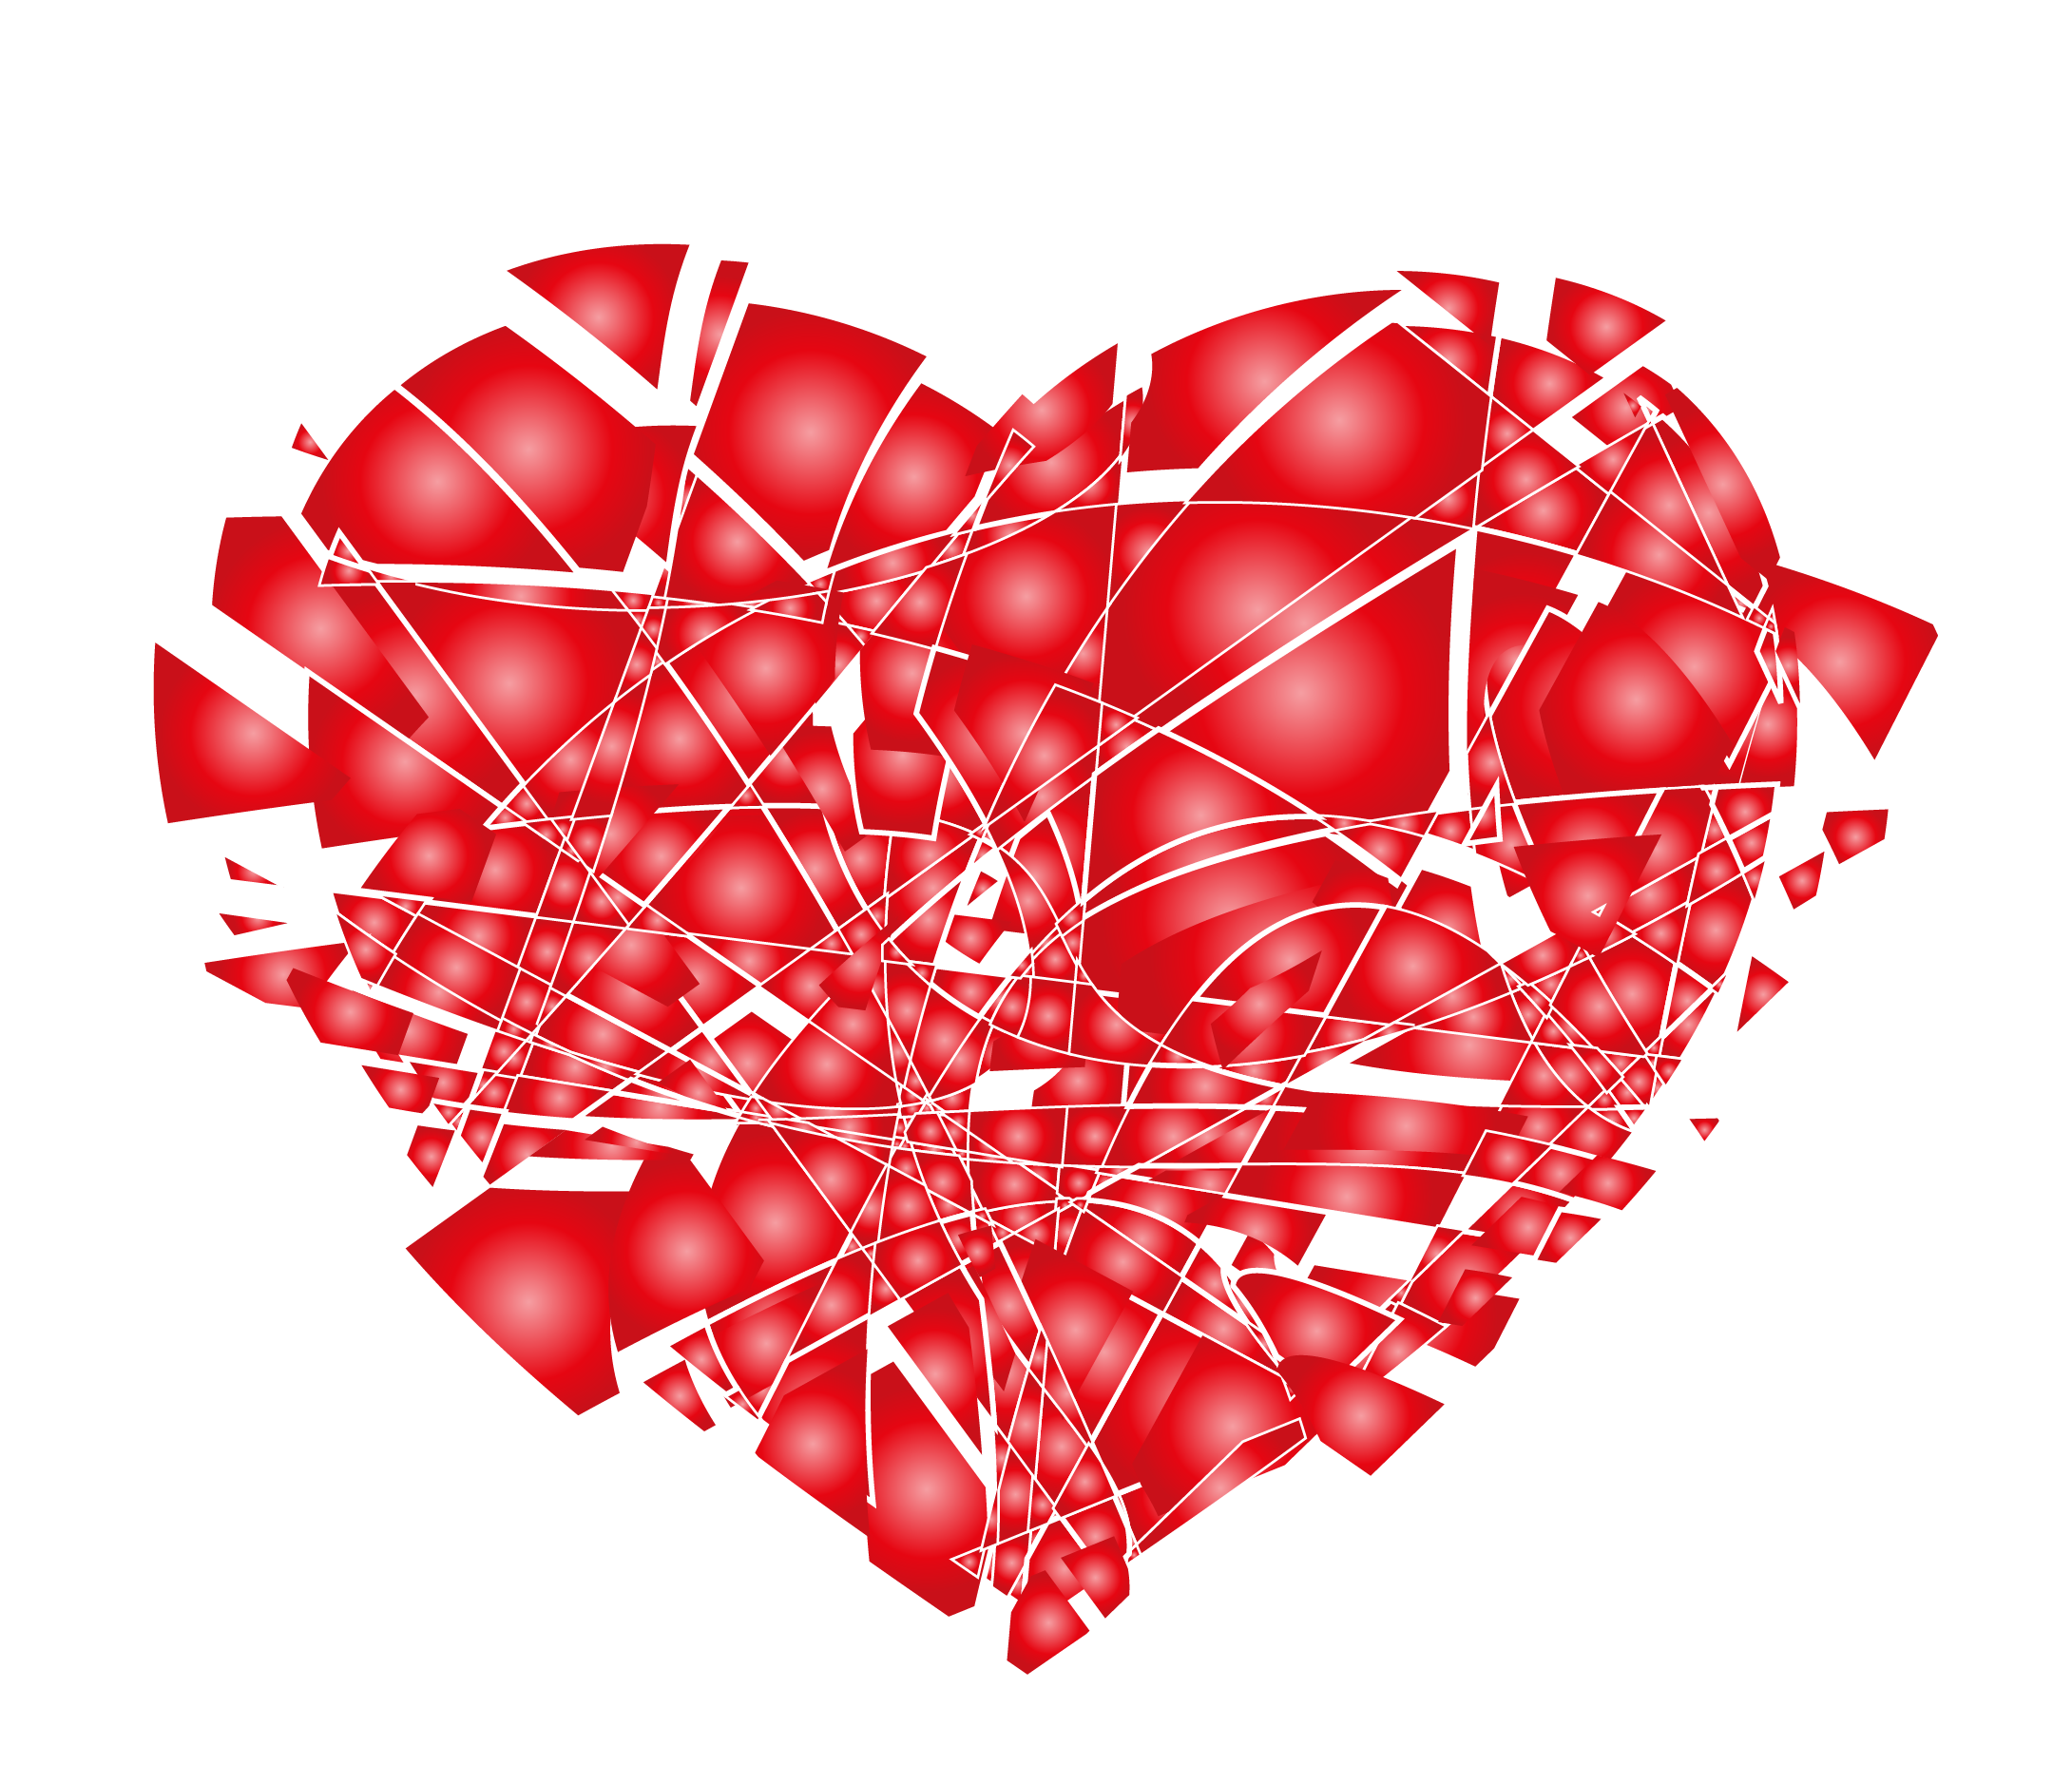 Free clipart broken heart graphic library stock Broken heart Love Clip art - Broken hearts broken explosion 2180 ... graphic library stock